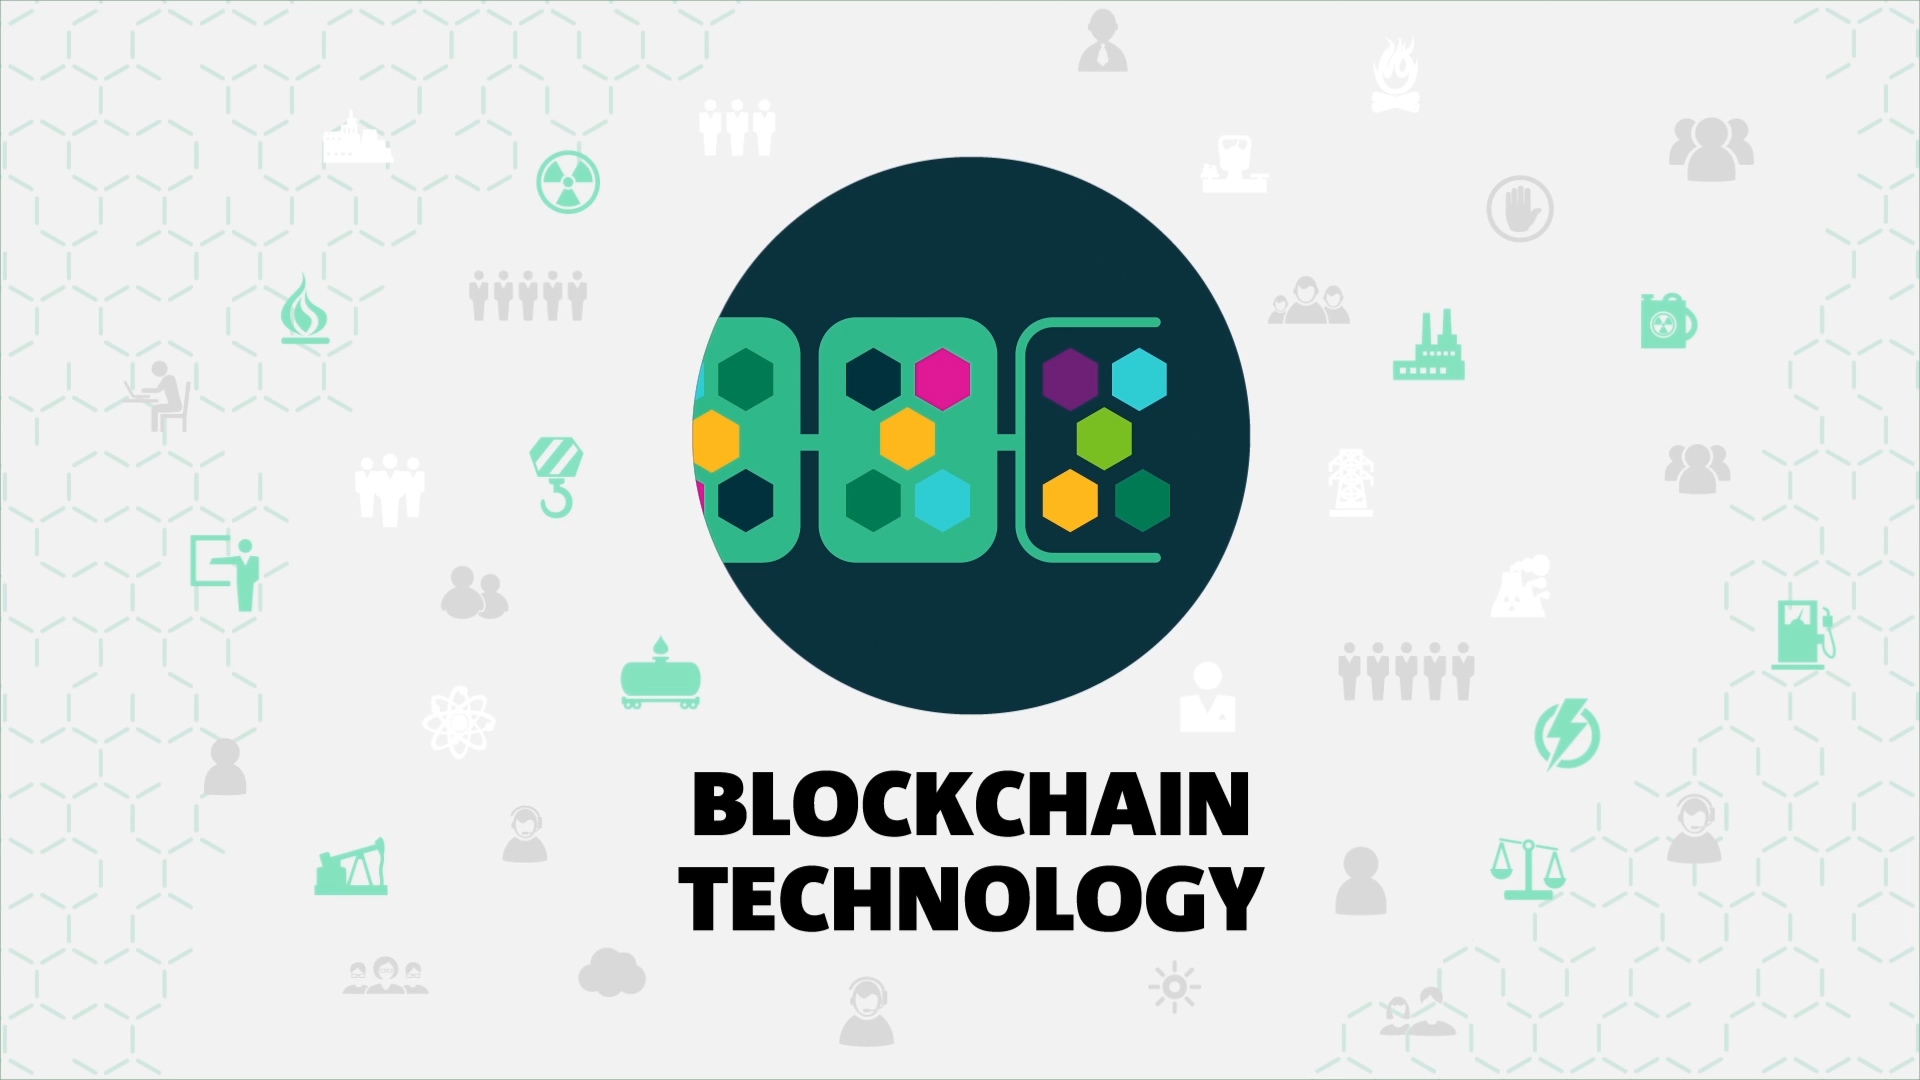 Decorative image showing the words Blockchain Technology overlaid on a variety of icons.